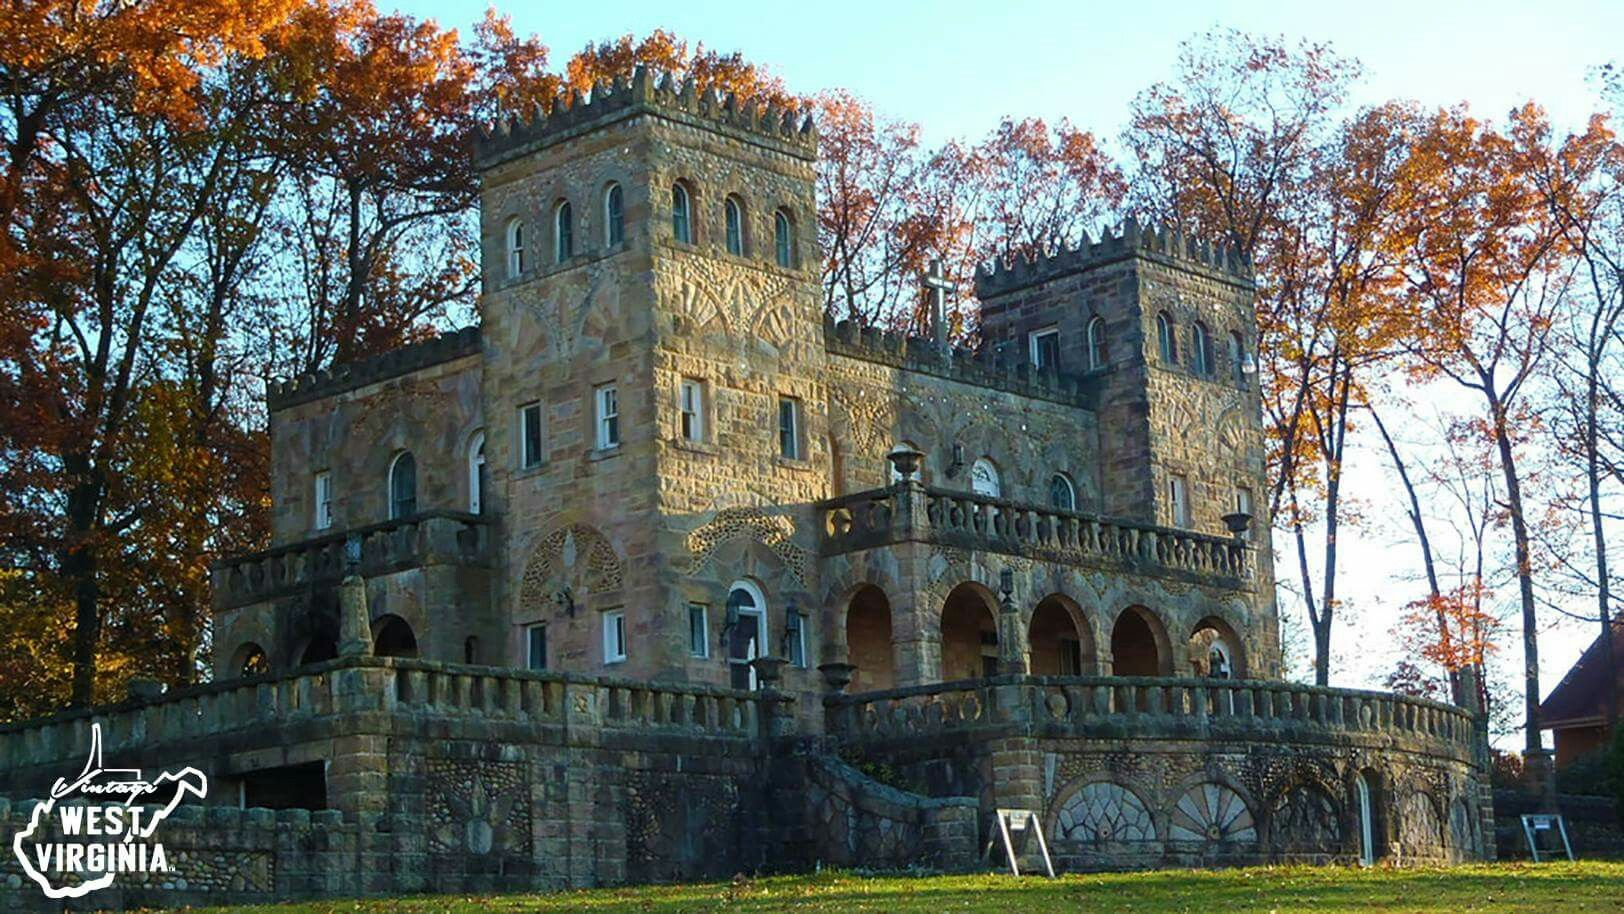 The Pietro Castle On Tyrone Road In Morgantown Monongalia County Photo Haphazard11 Via Flickr The Castle Was Bu West Virginia Places To Travel Morgantown